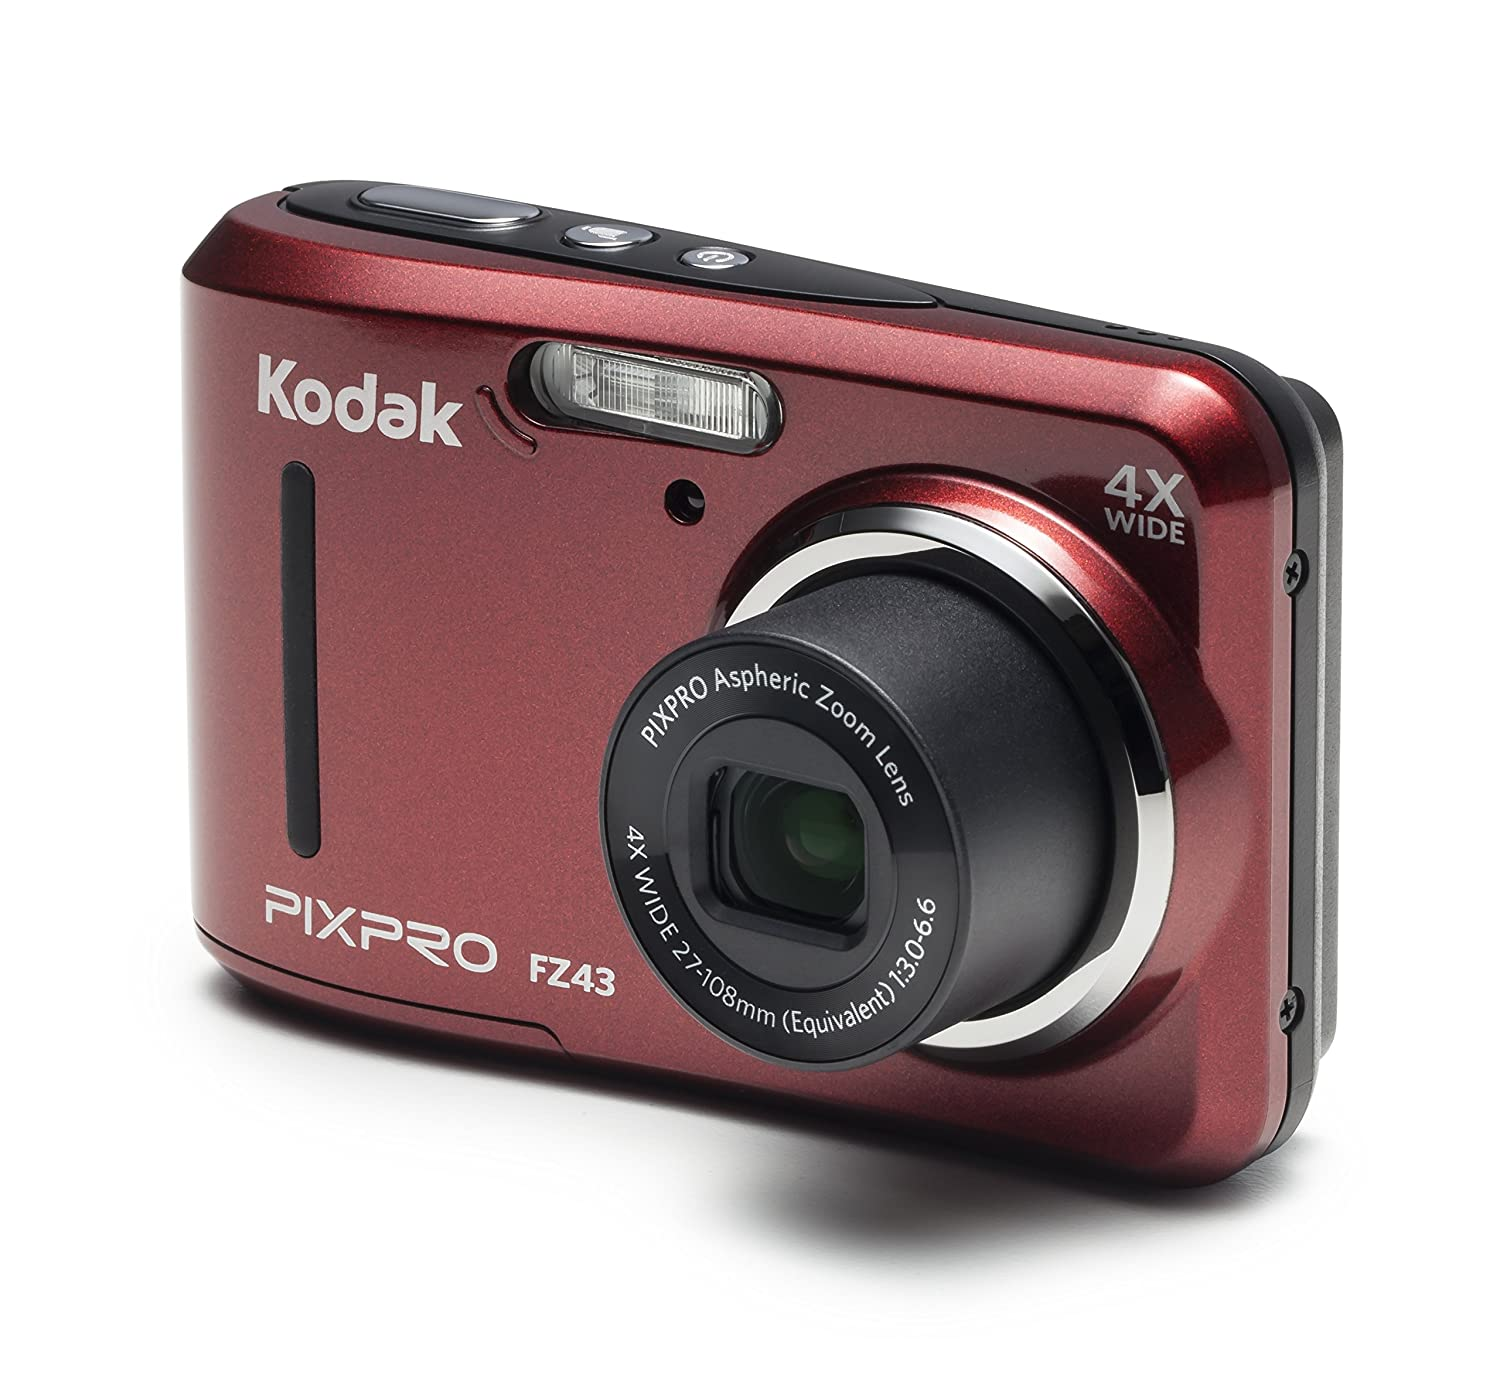 Kodak PIXPRO Friendly Zoom FZ43 Review